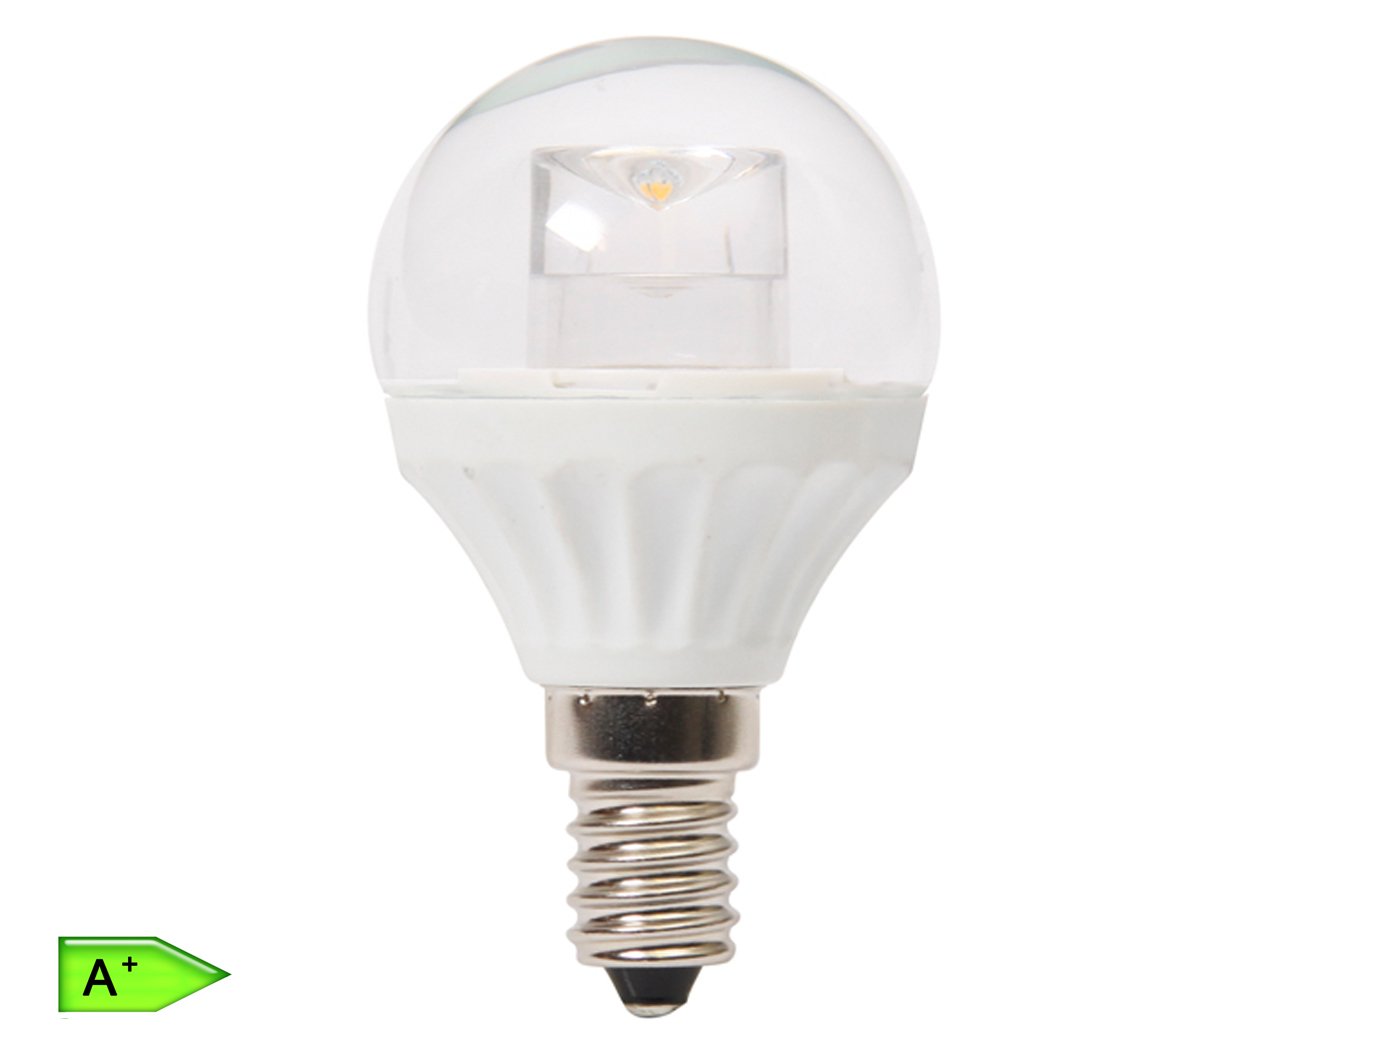 Luminea dimmbare smd led lampe e leds weiß lm er set